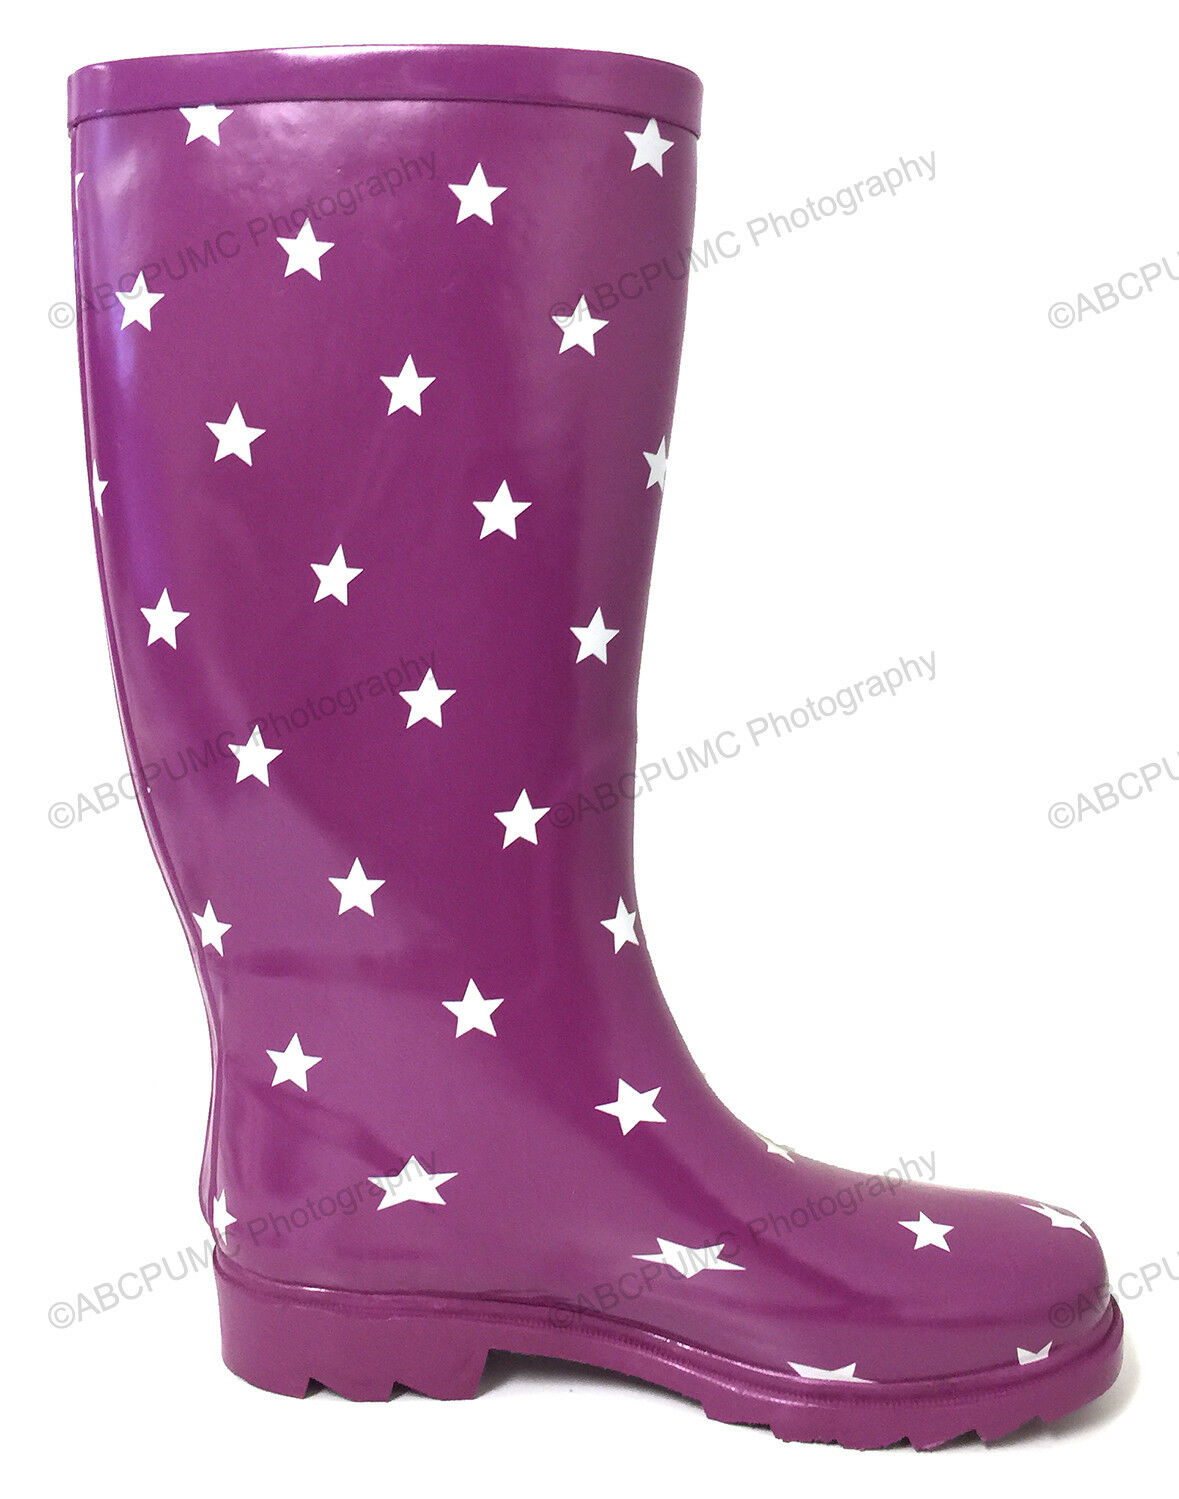 Women's Rain Boots Rubber Waterproof Colors Wellies\ Mid Calf Snow Boots, Sizes